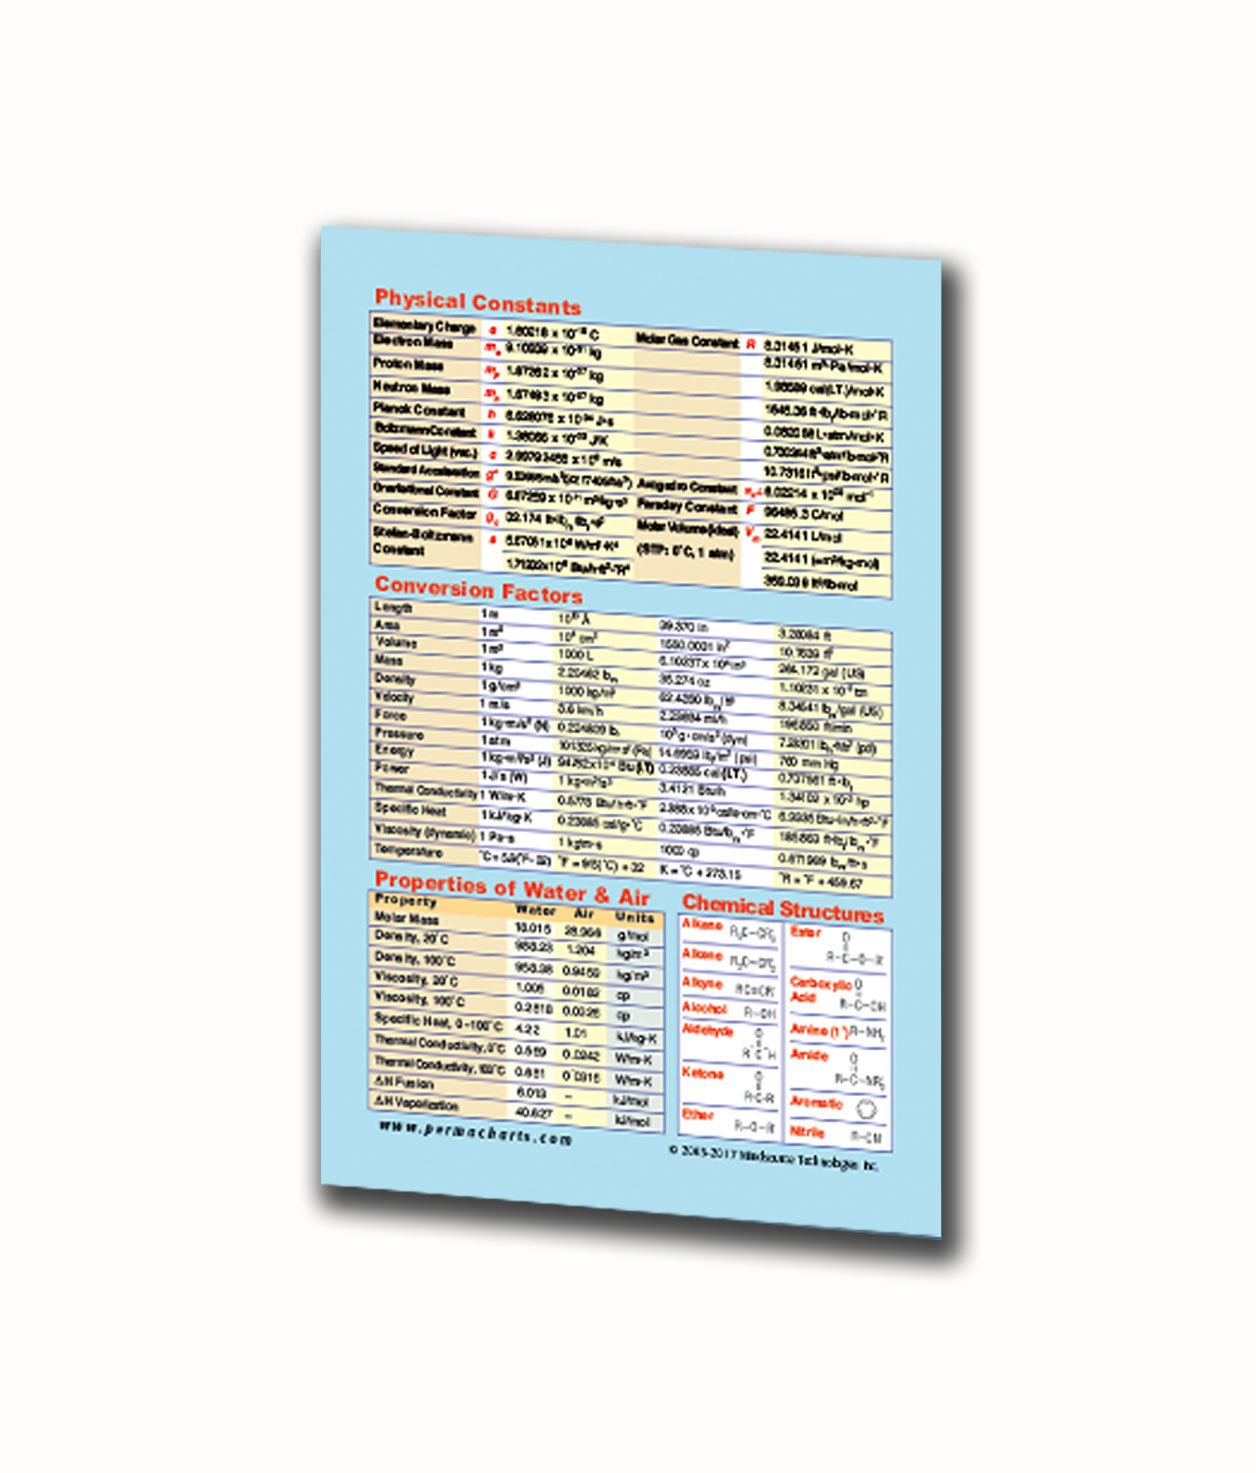 Reference table periodic table gallery periodic table images amazon chemical periodic table of elements wallet chart amazon chemical periodic table of elements wallet chart gamestrikefo Images